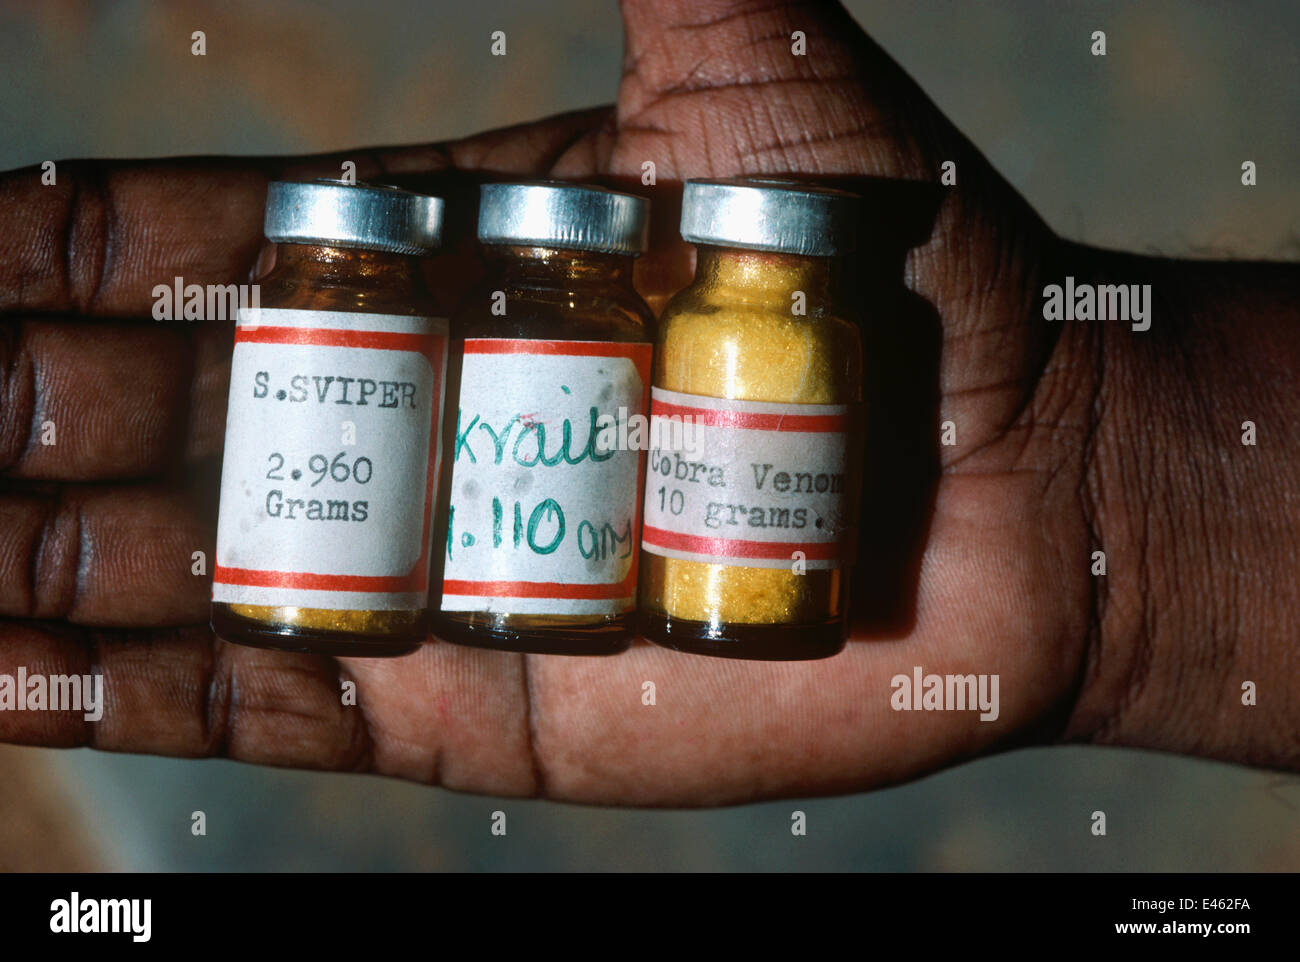 Irula Snake Tribe member holding vials of snake anti-venom for Viper, Krait and Cobra bites. Southern India. Stock Photo